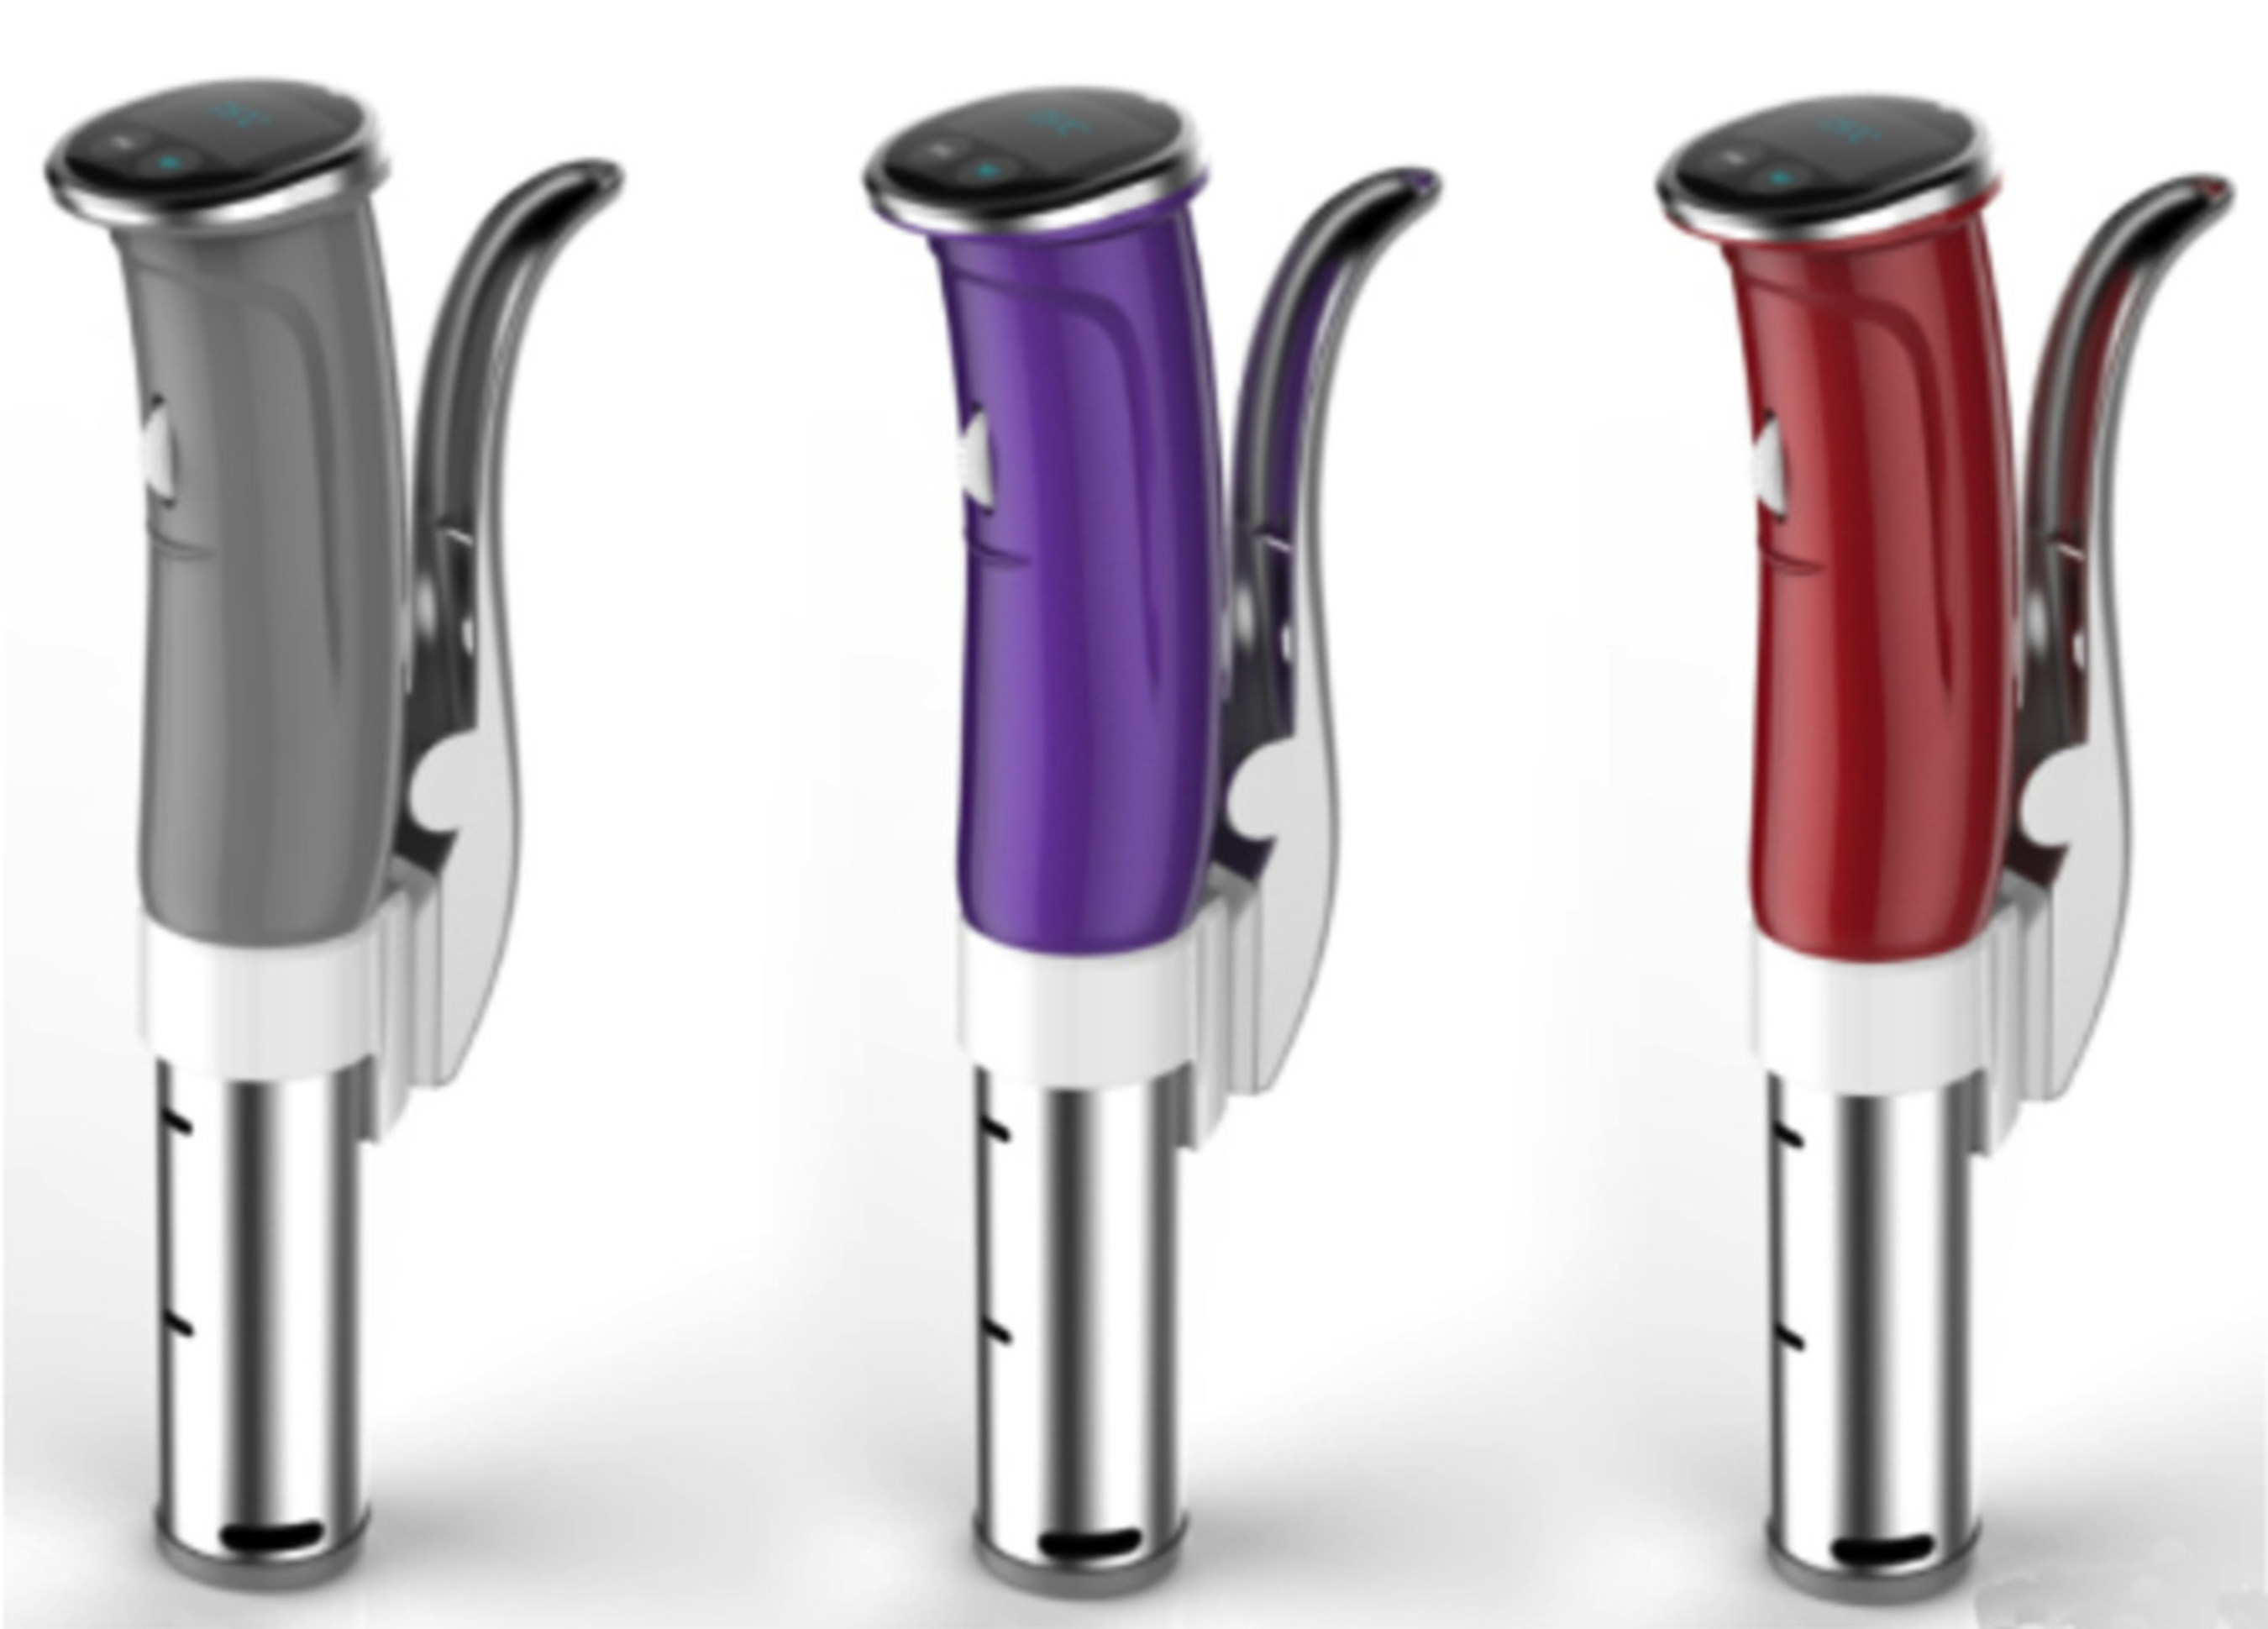 Gourmia's new Wi-Fi and Bluetooth-enabled Sous Vide pod will include a mobile app with recipes from Jason Logsdon of ModernistCookingMadeEasy.com.